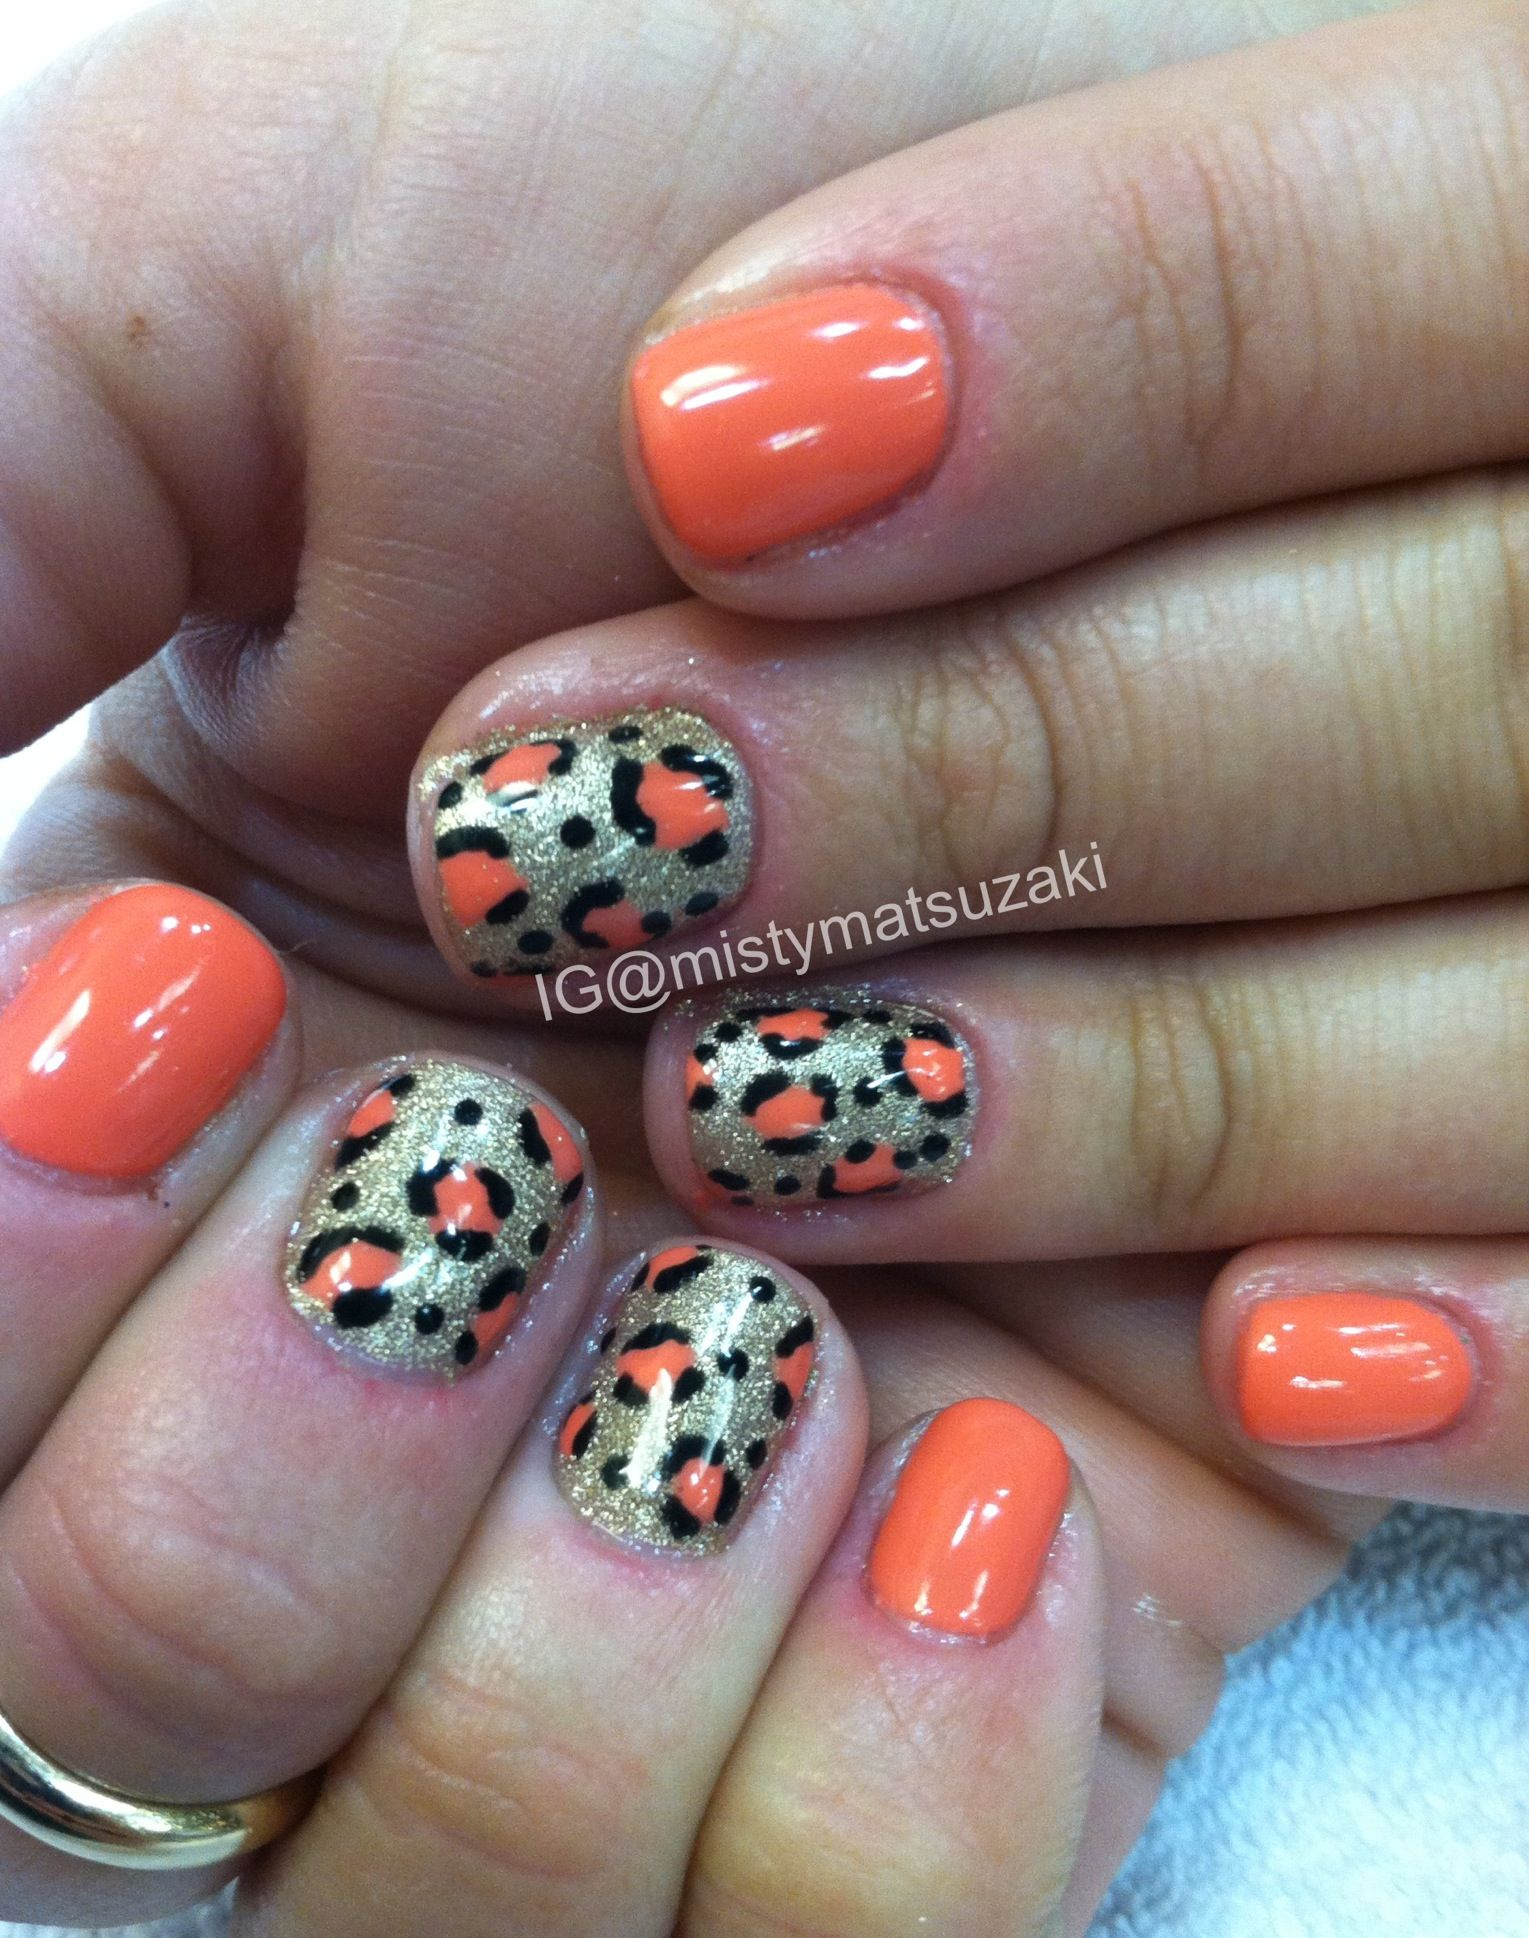 Coral leopard gelish nail art | My NAIL ART WORK | Pinterest ...